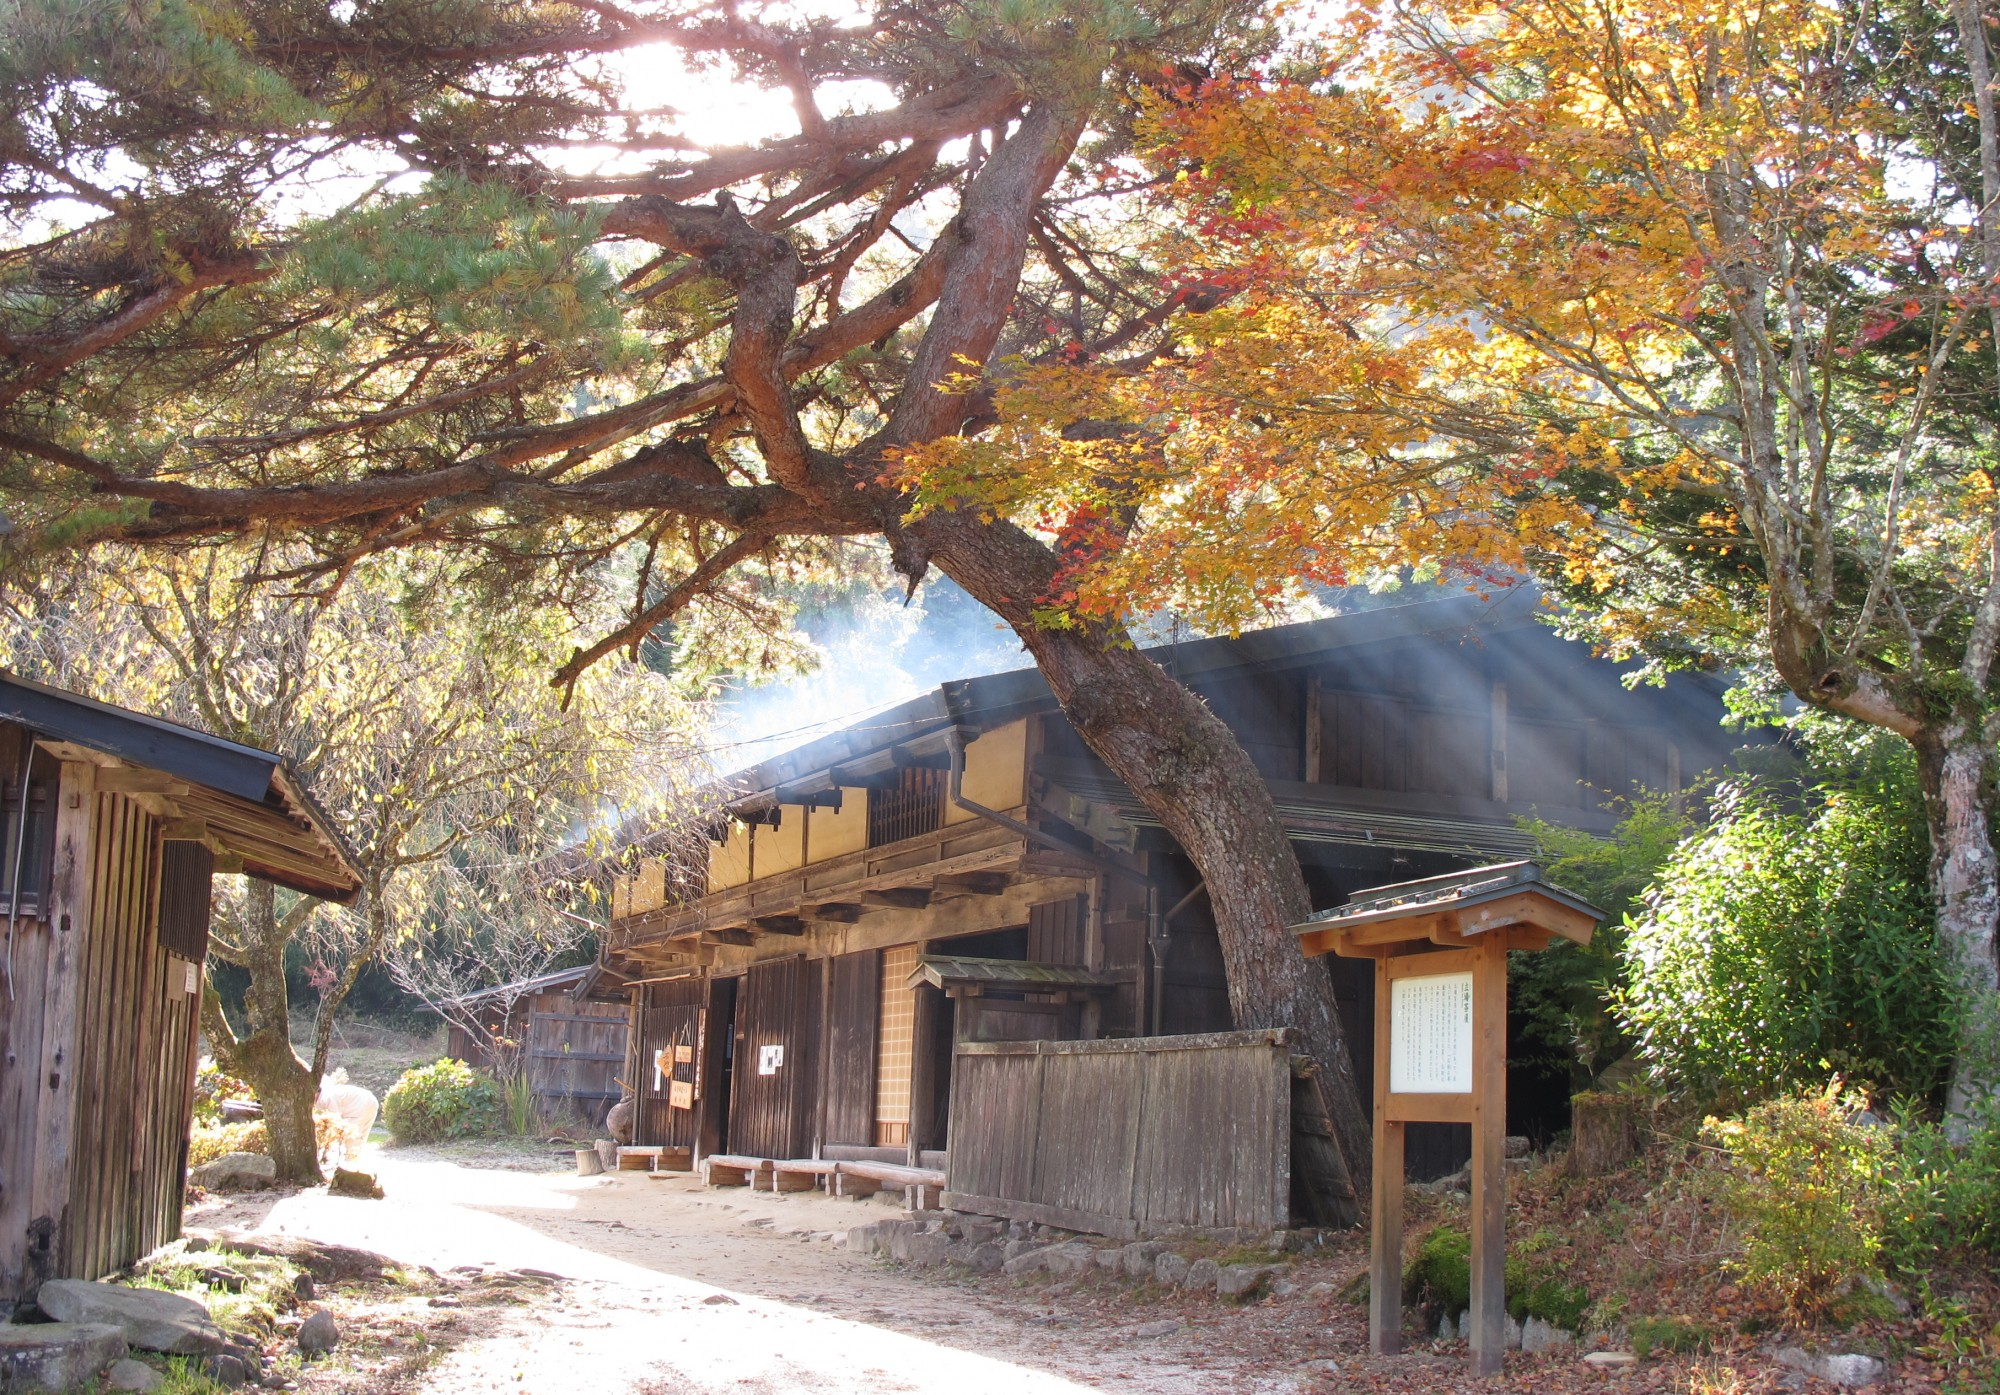 Nakasendo_Way_Tea_house_near_O-tsumago_01_cropped.jpg